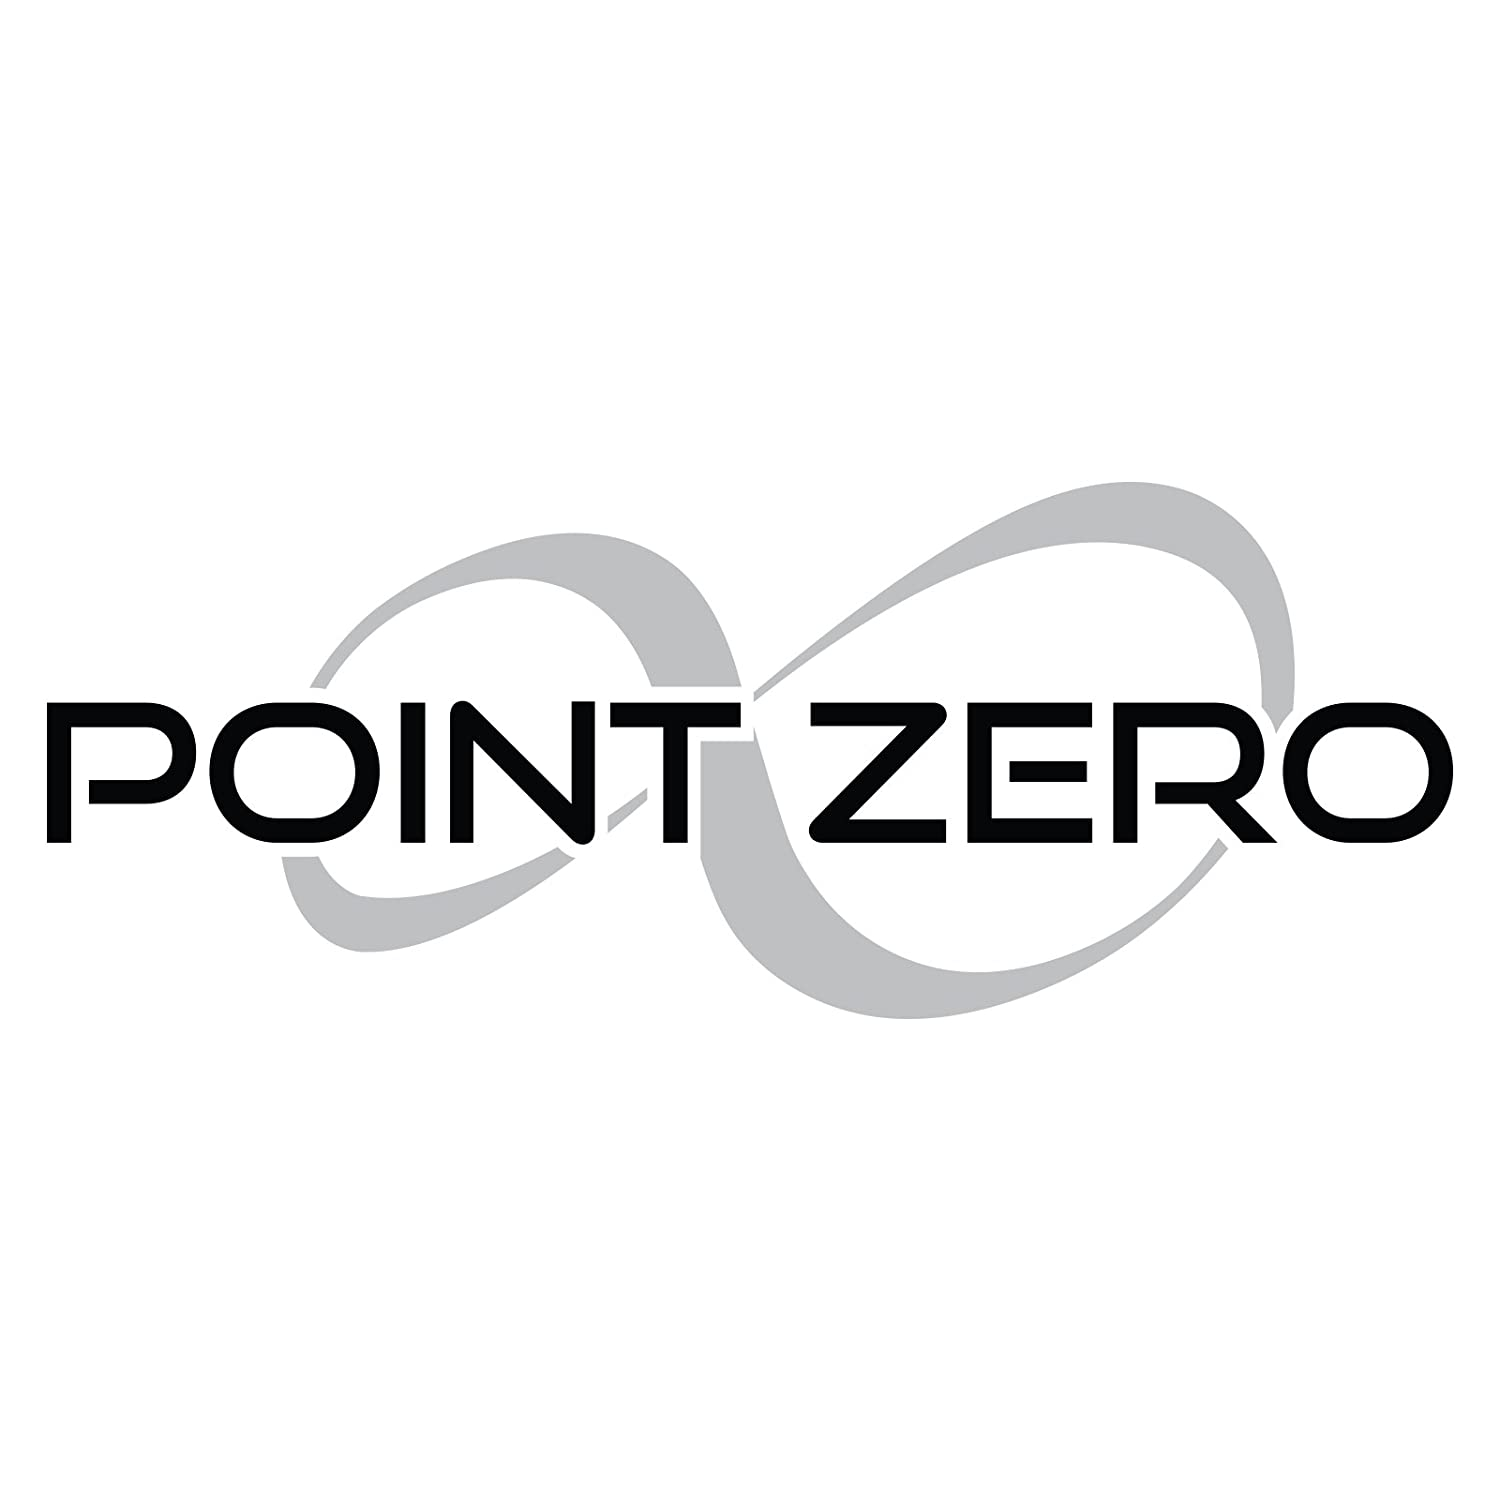 PointZero Airbrush Manifold 3-Way Air Hose Splitter 1//8 Taps